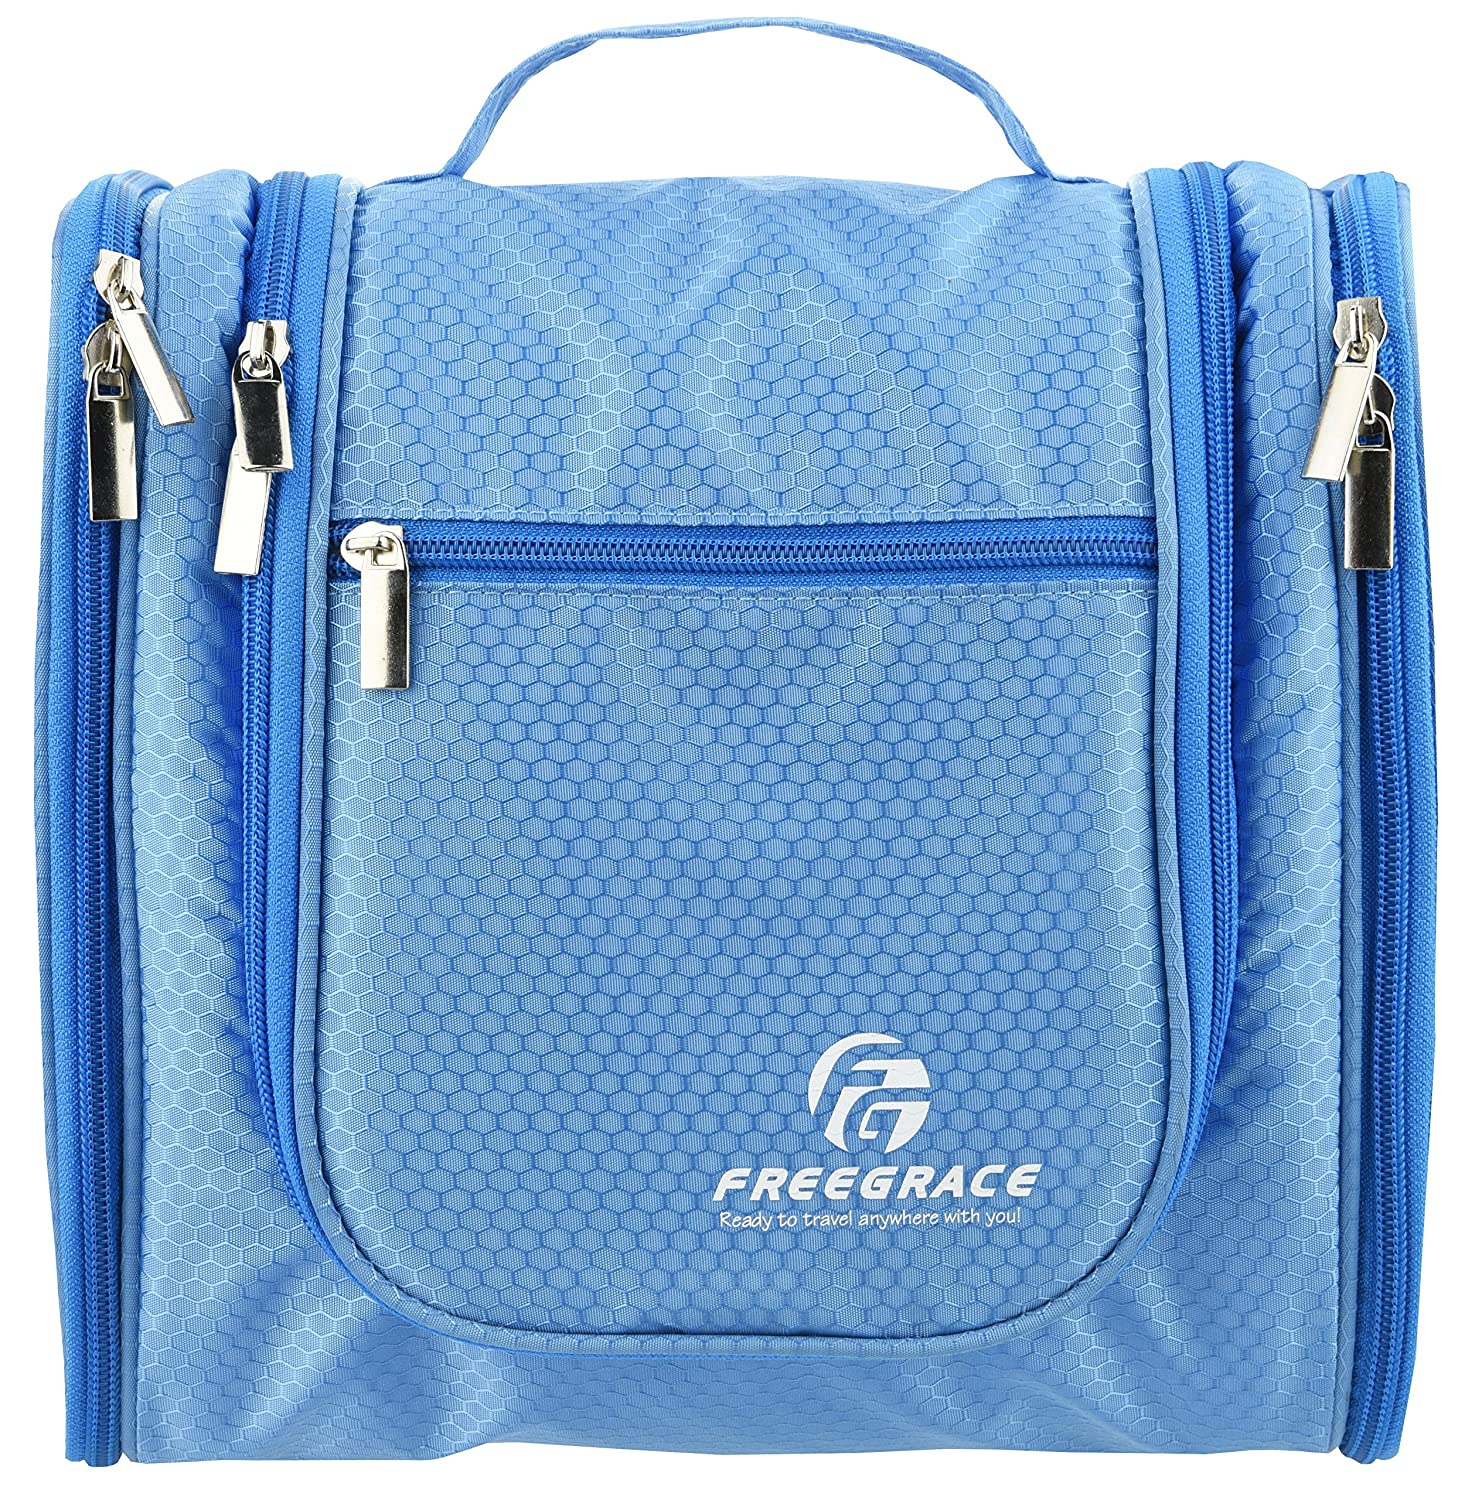 Premium Toiletry Bag By Freegrace - Large Travel Essentials Organizer - Durable Hanging Hook - For Men & Women - Perfect For Accessories, Cosmetics, Personal Items, Shampoo, Body Wash (Fluorescent Green)